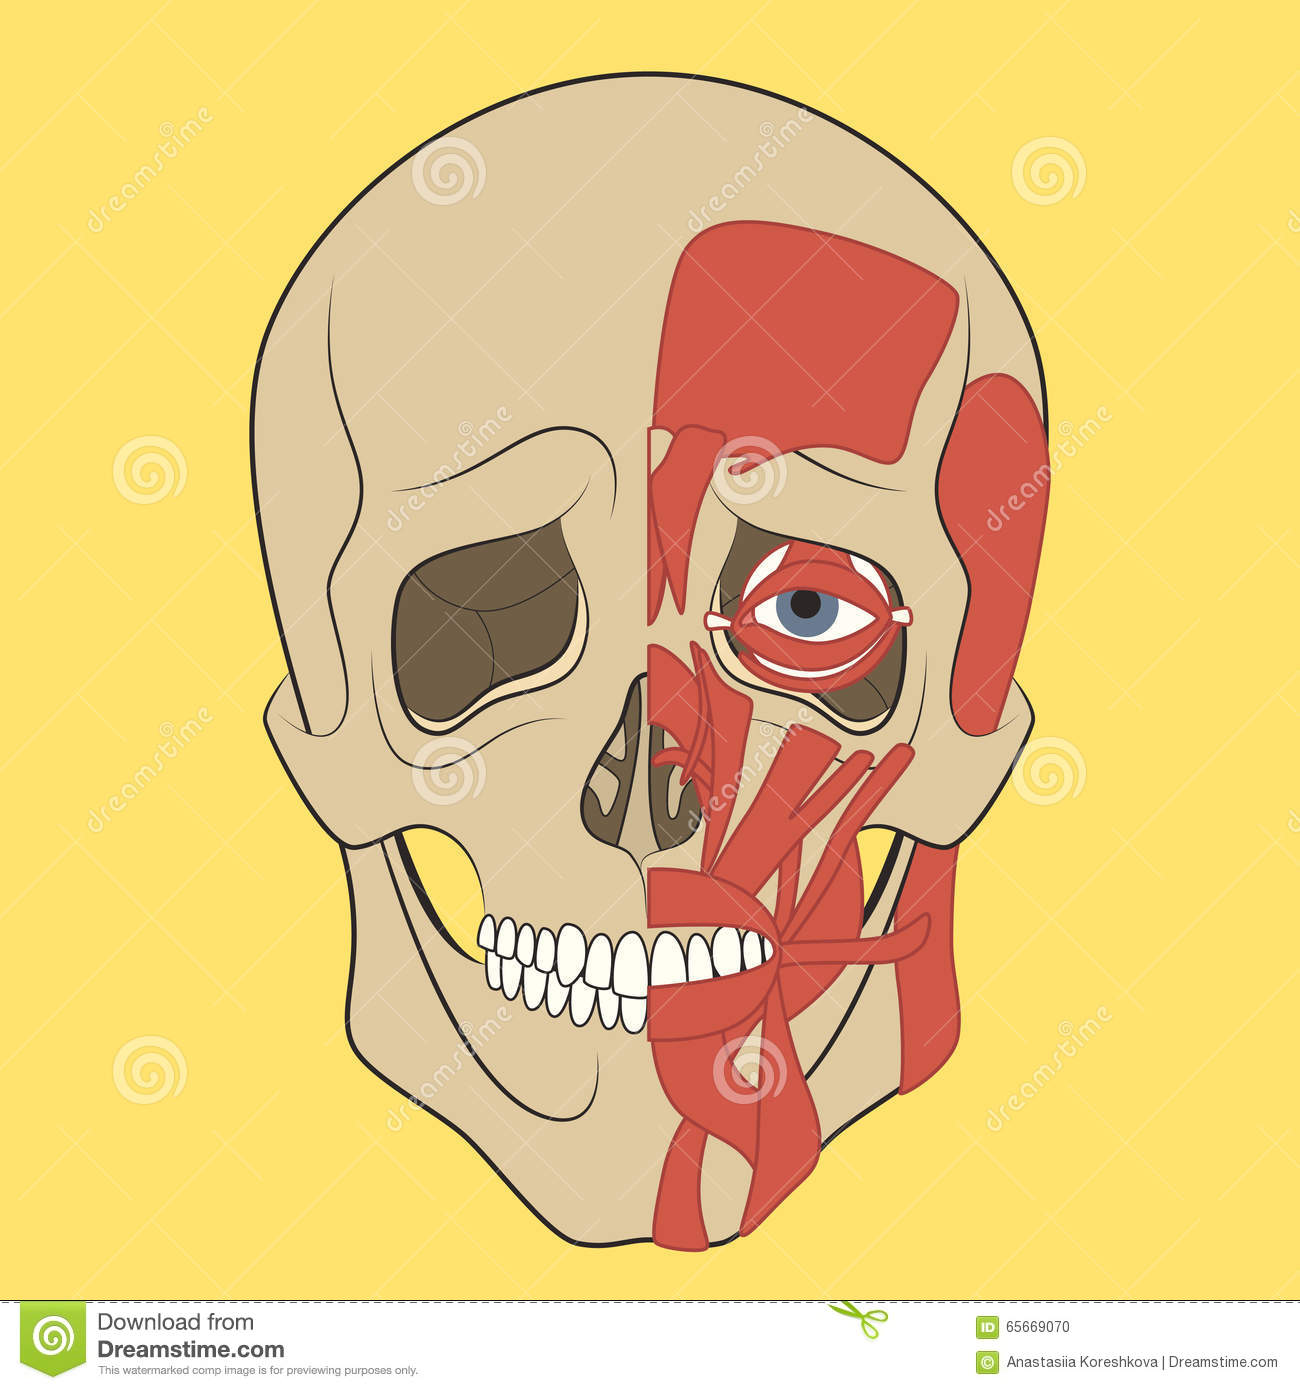 Human Skull With Muscle System. Stock Vector - Illustration of ...